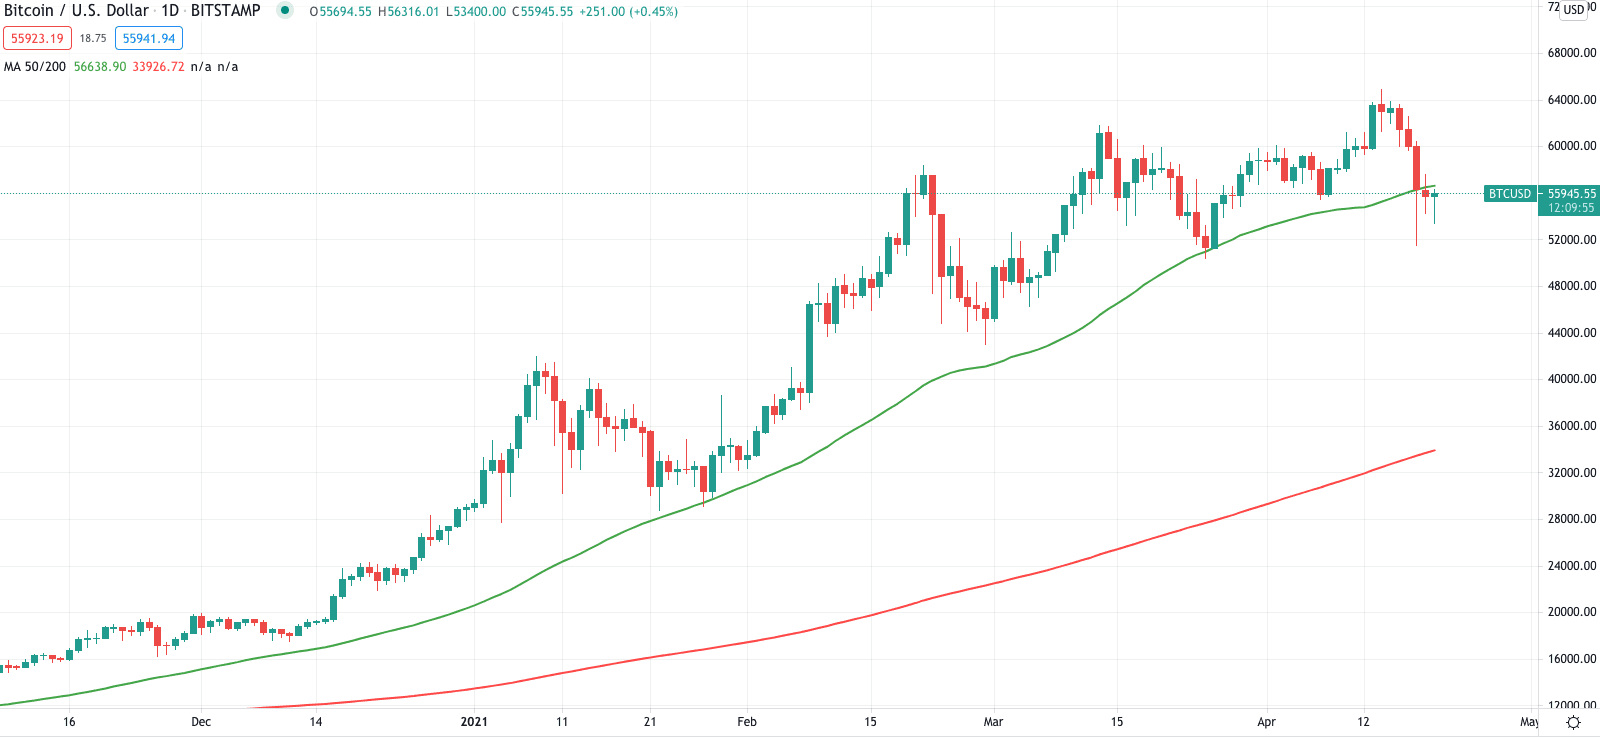 Bad omen? US dollar and Bitcoin are both dropping in an uncommon pattern